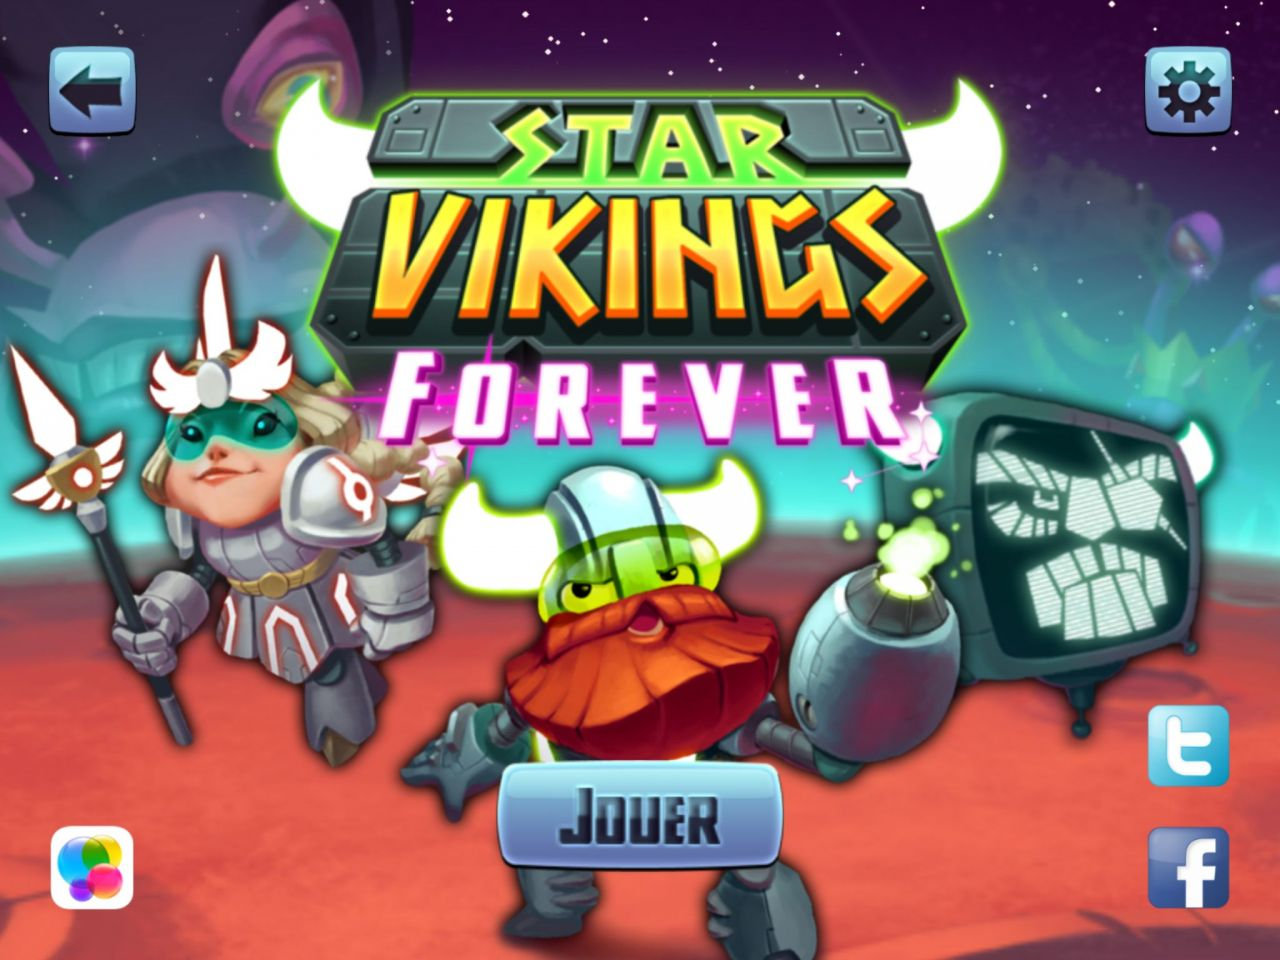 Star Vikings Forever (copie d'écran 1 sur iPhone / iPad)